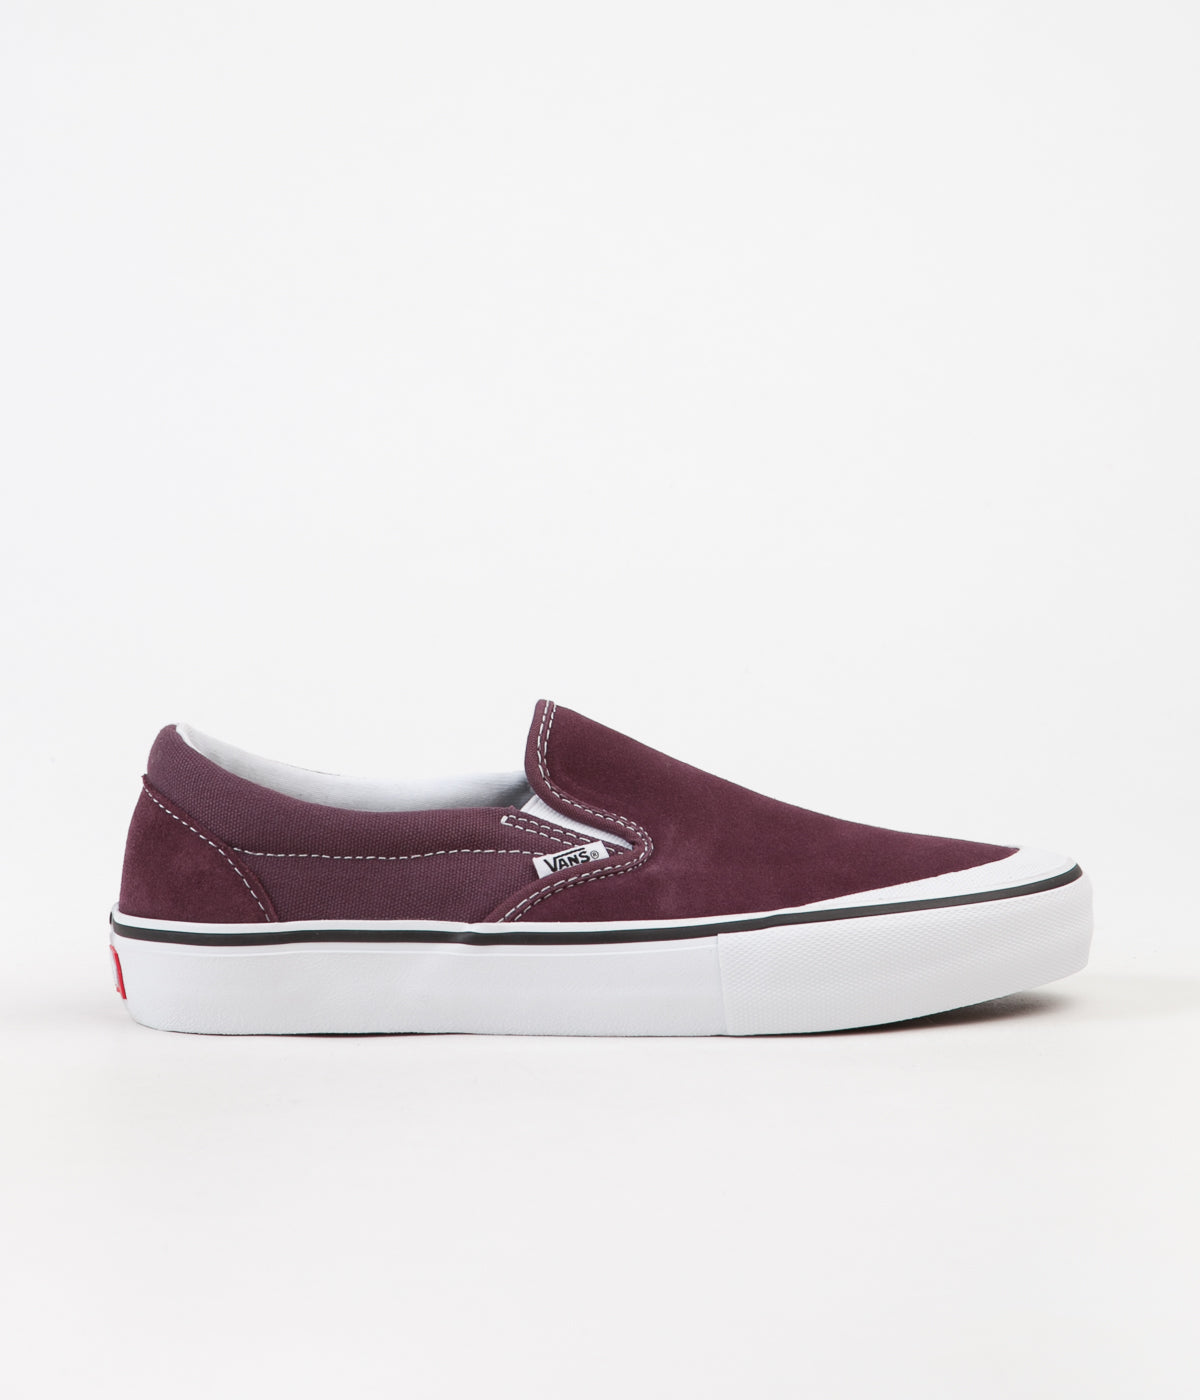 Vans Slip On Pro Shoes - Raisin   White  a2e03d892